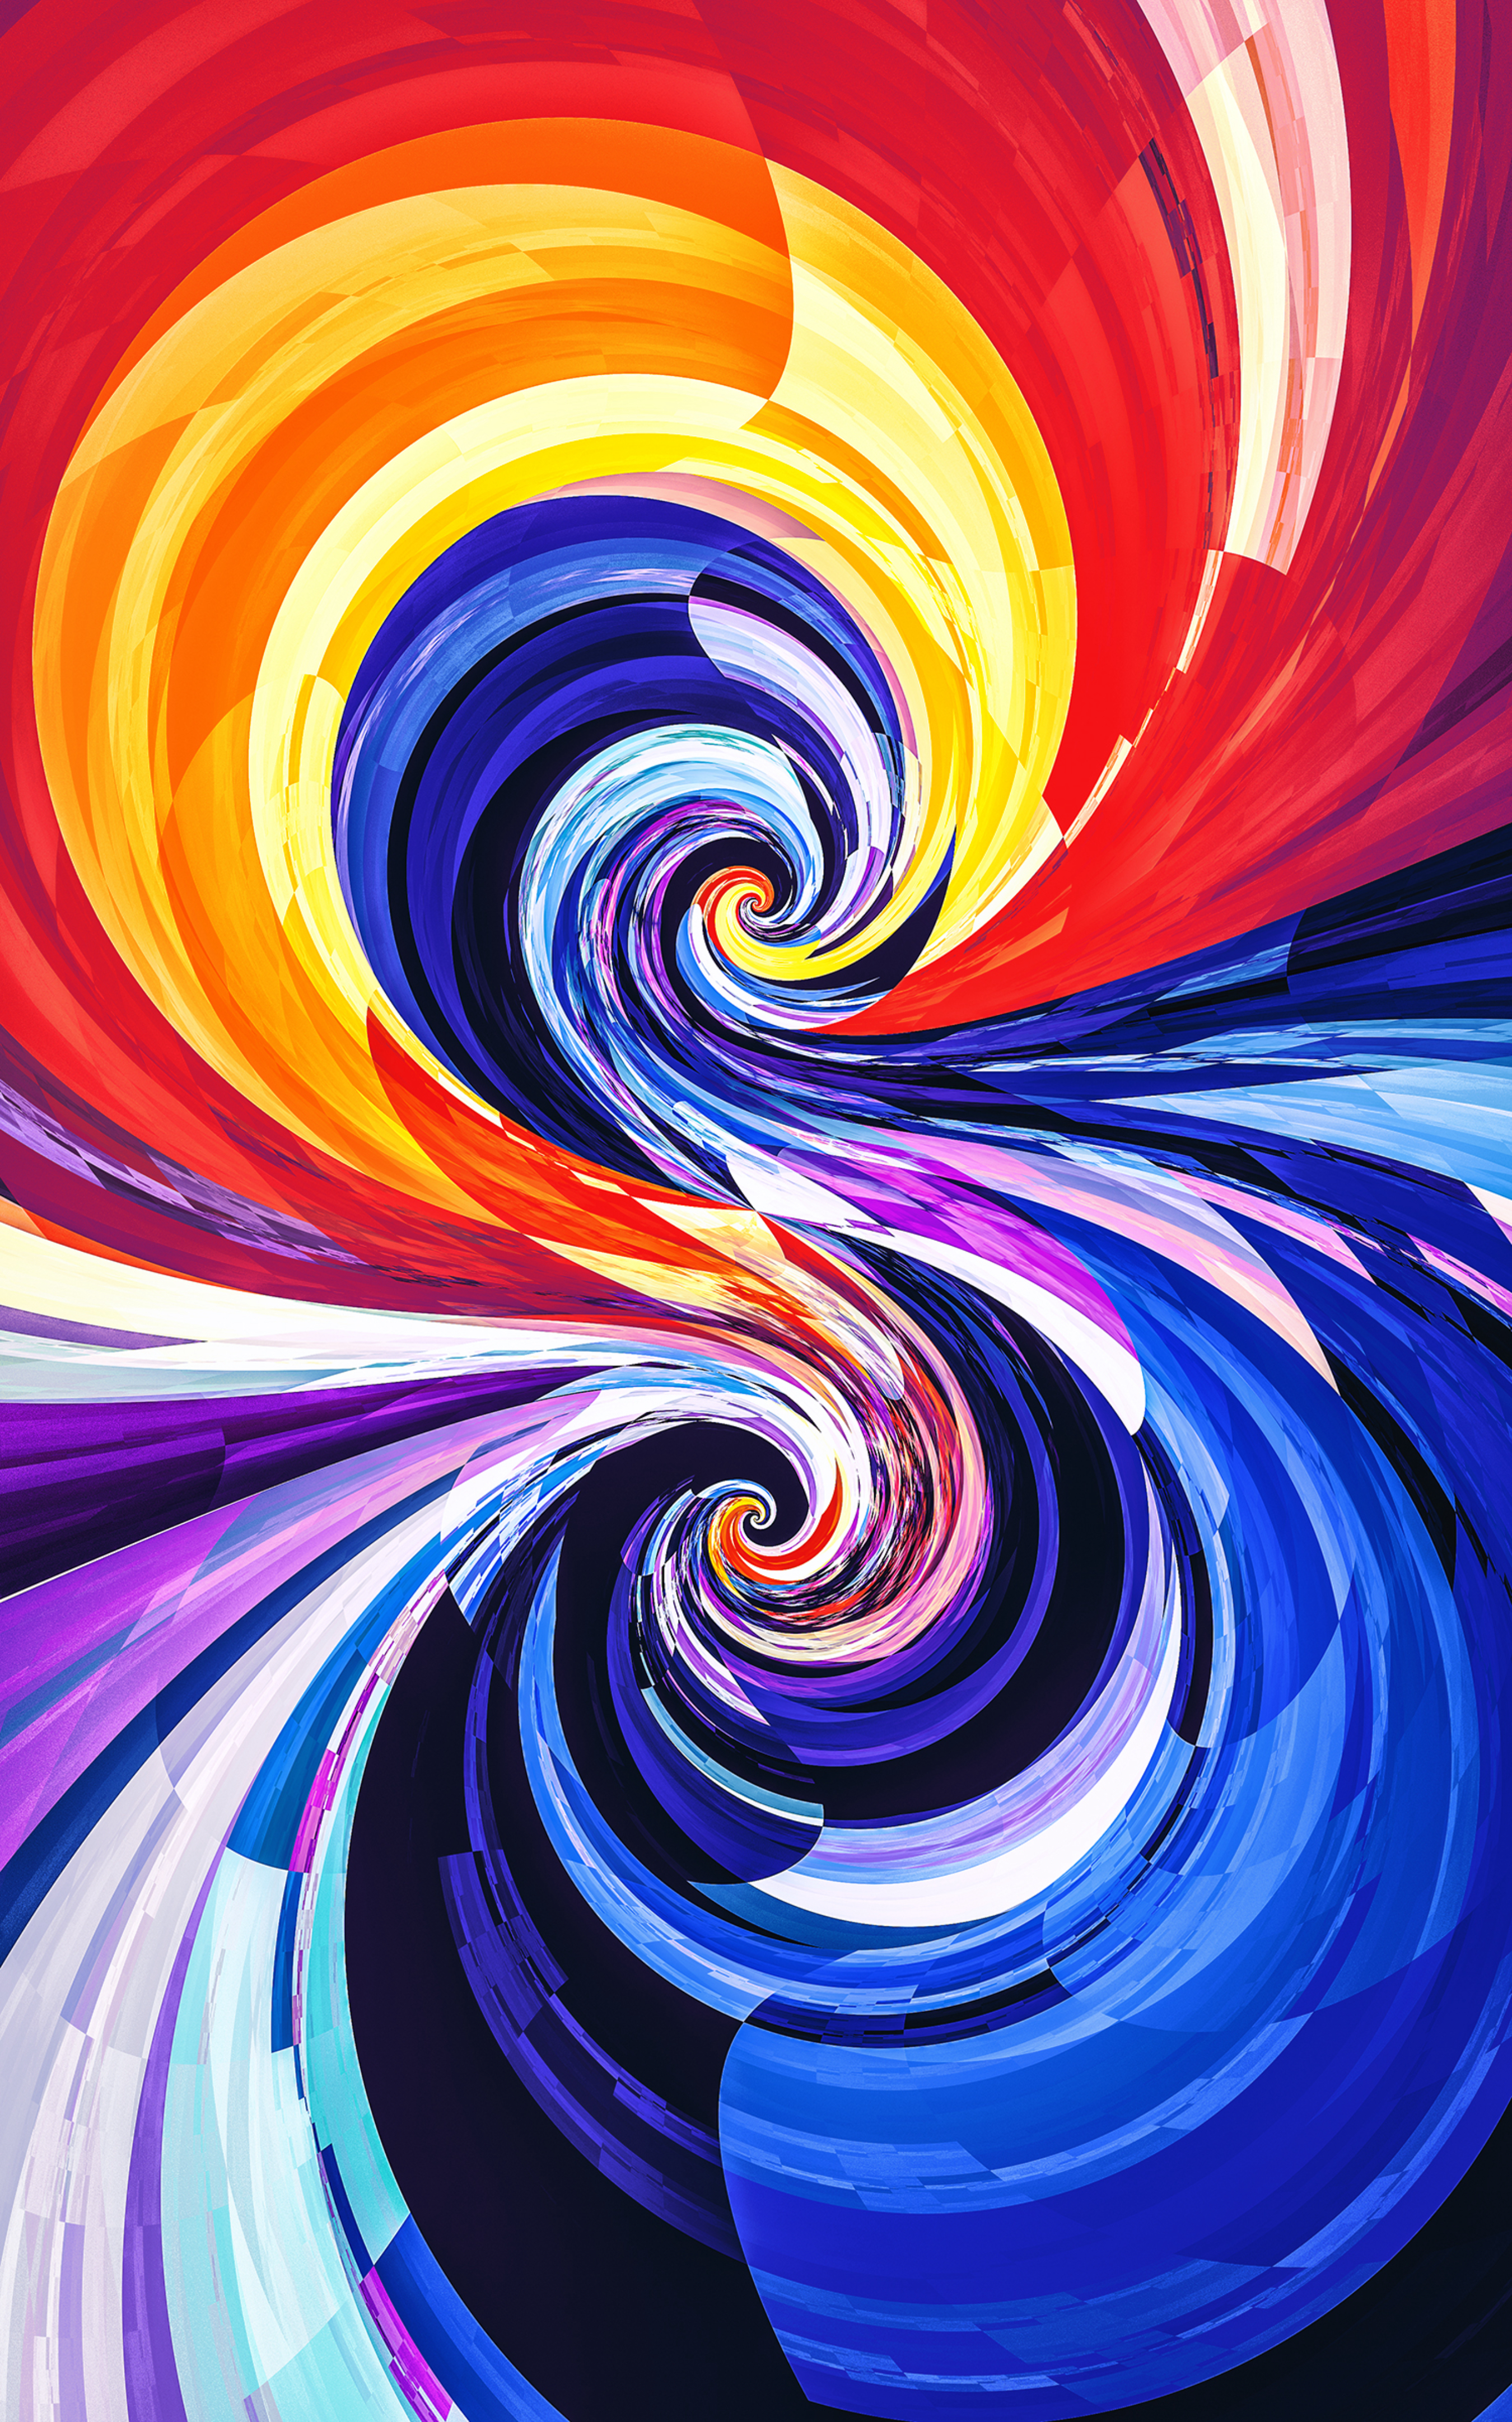 79474 Screensavers and Wallpapers Swirling for phone. Download Abstract, Circles, Multicolored, Motley, Spiral, Spirals, Swirling, Involute pictures for free